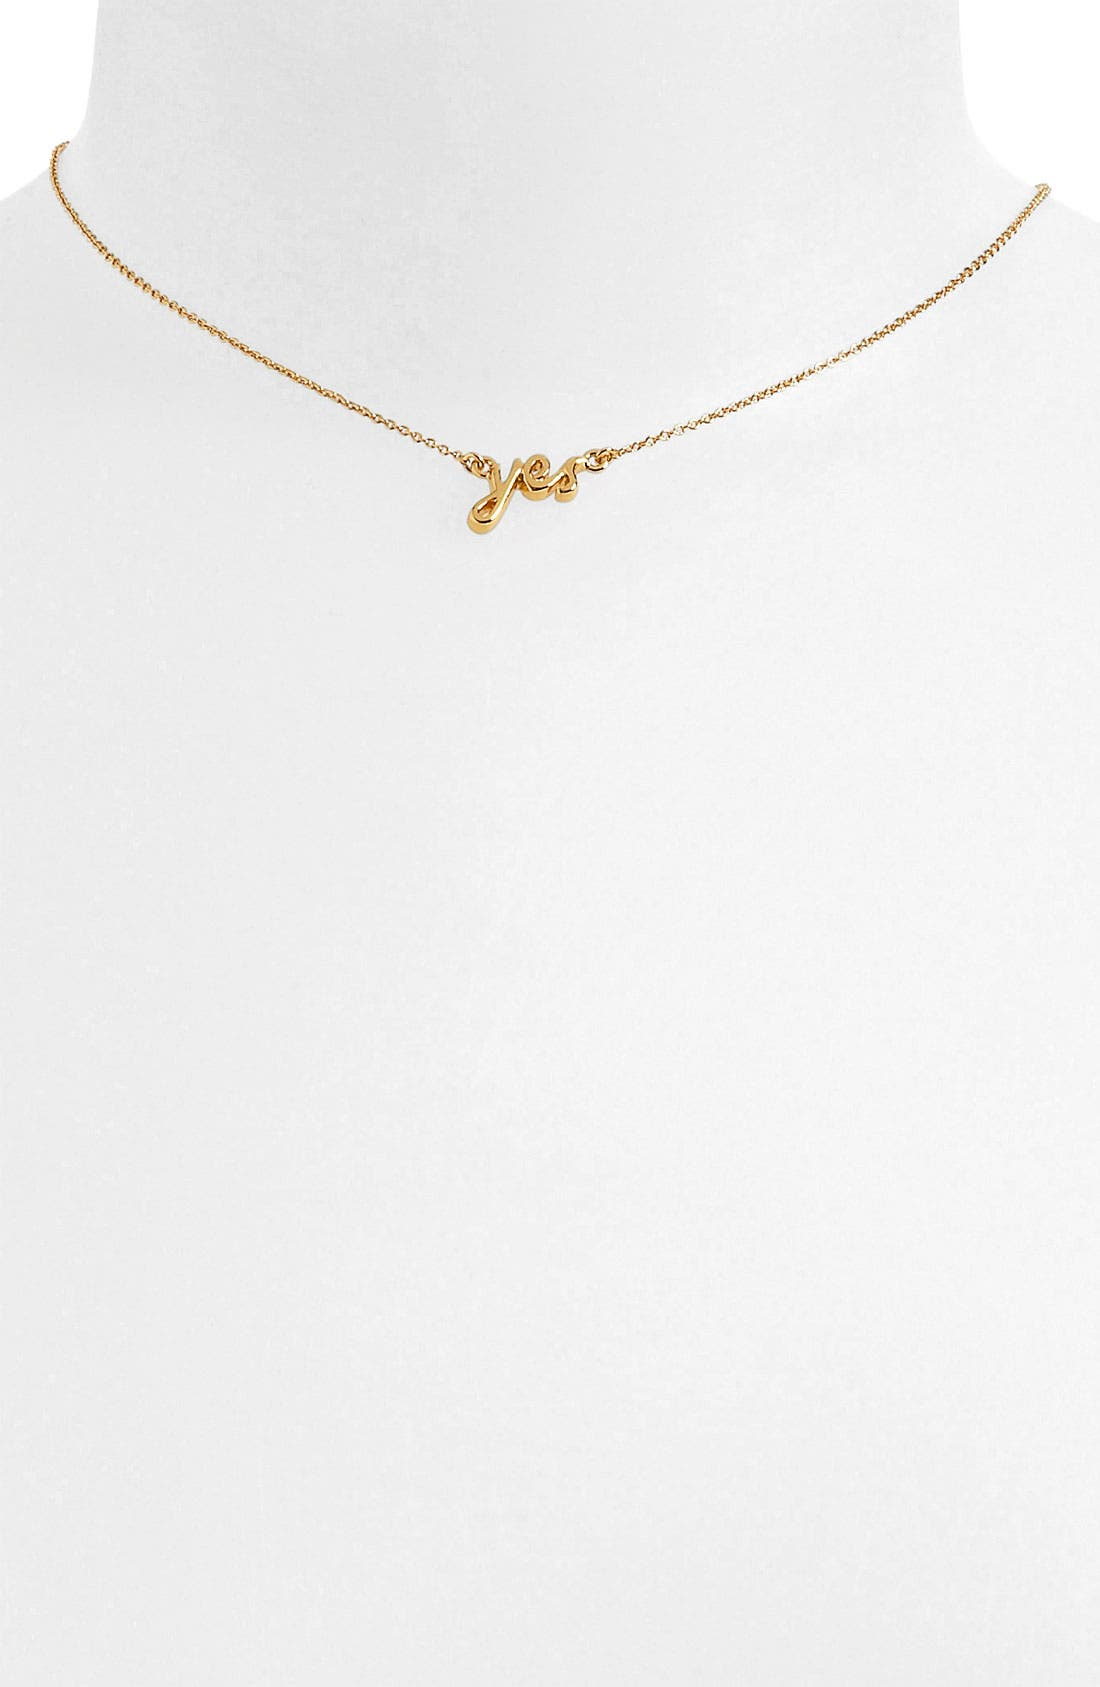 Alternate Image 1 Selected - kate spade new york 'say yes' pendant necklace